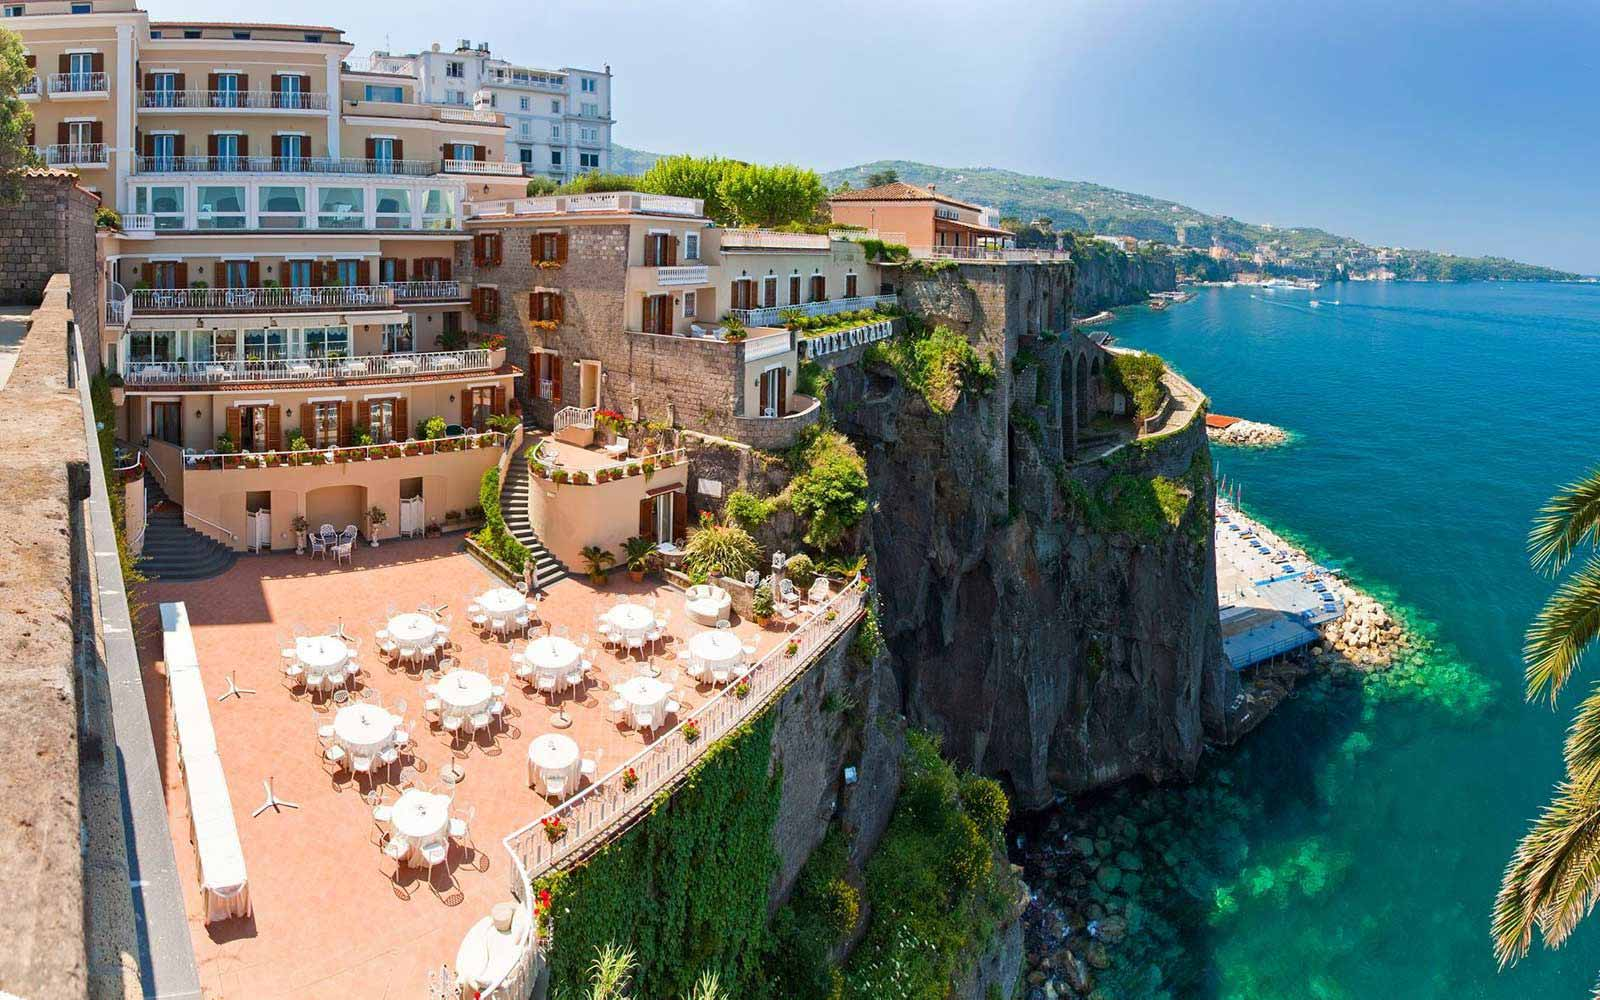 Panoramic view over Hotel Corallo